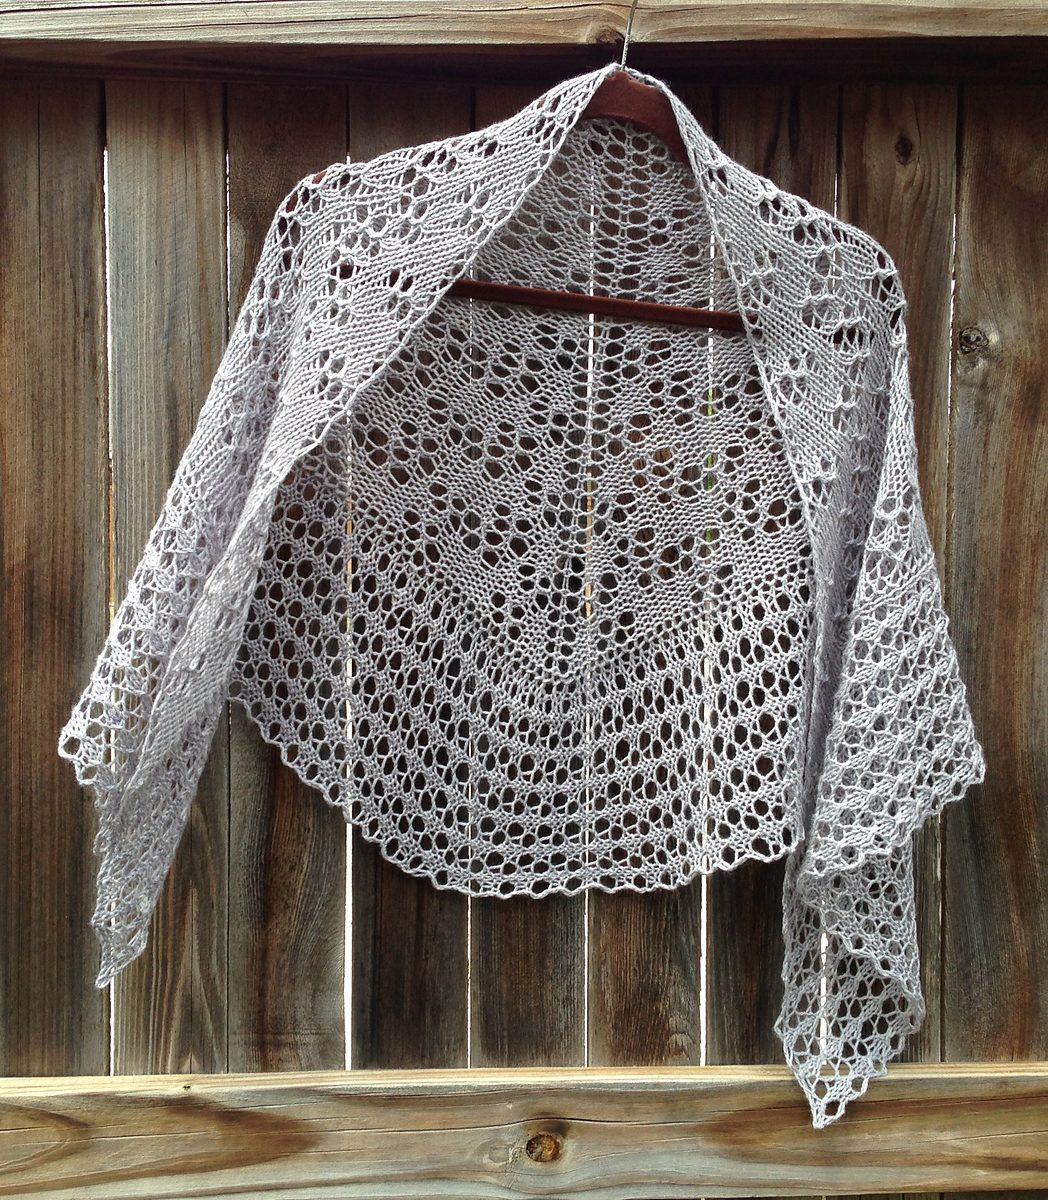 Knitting pattern for easy damson one skein shawl easy dk yarn lace knitting pattern for easy damson one skein shawl easy dk yarn lace triangular shawl knit dt1010fo